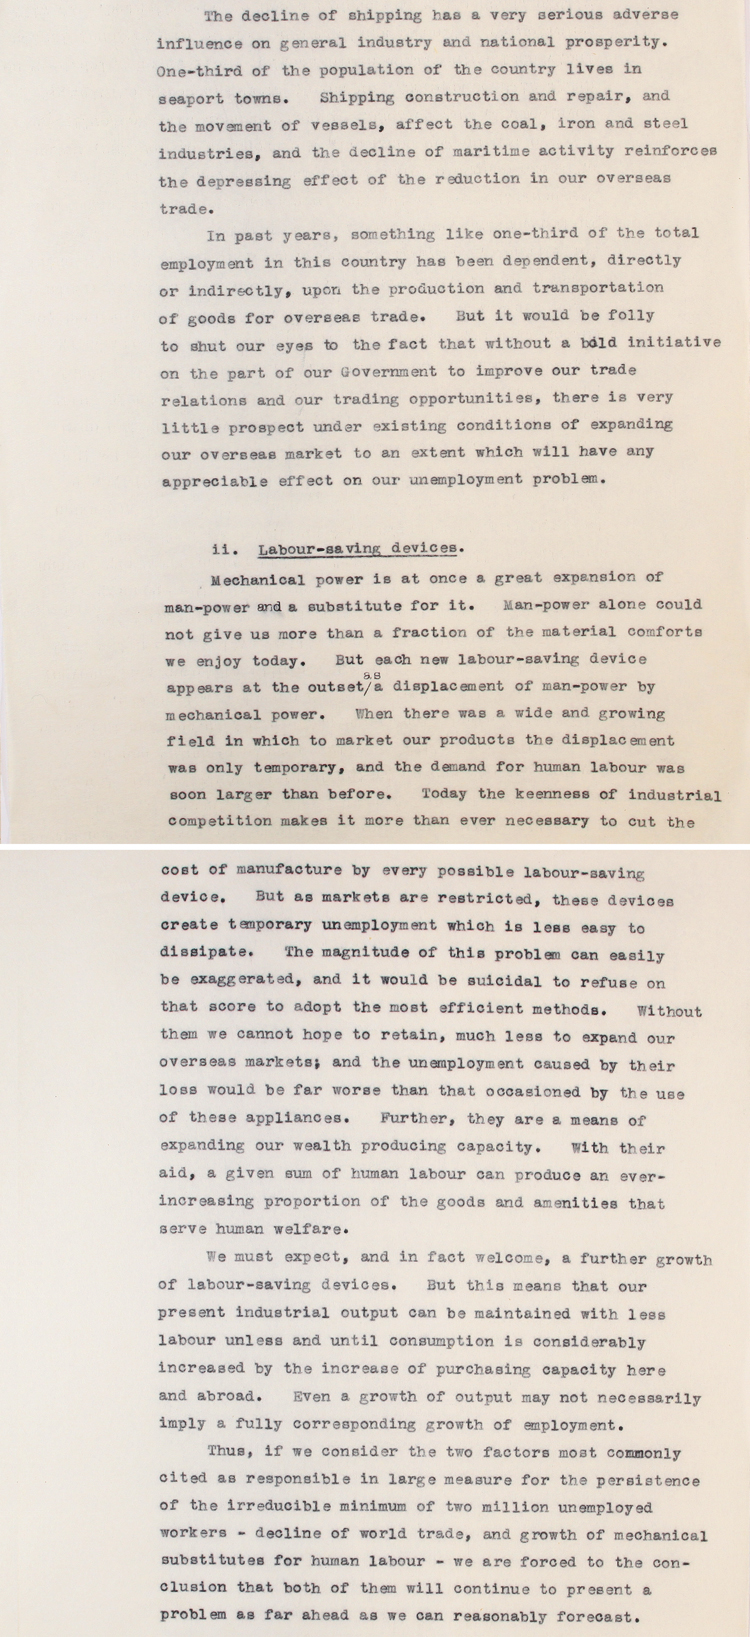 Extract from a report produced by former Prime Minister David Lloyd George on the problem of unemployment sent to serving Prime Minister Stanley Baldwin in 1935 (PREM 1/183)